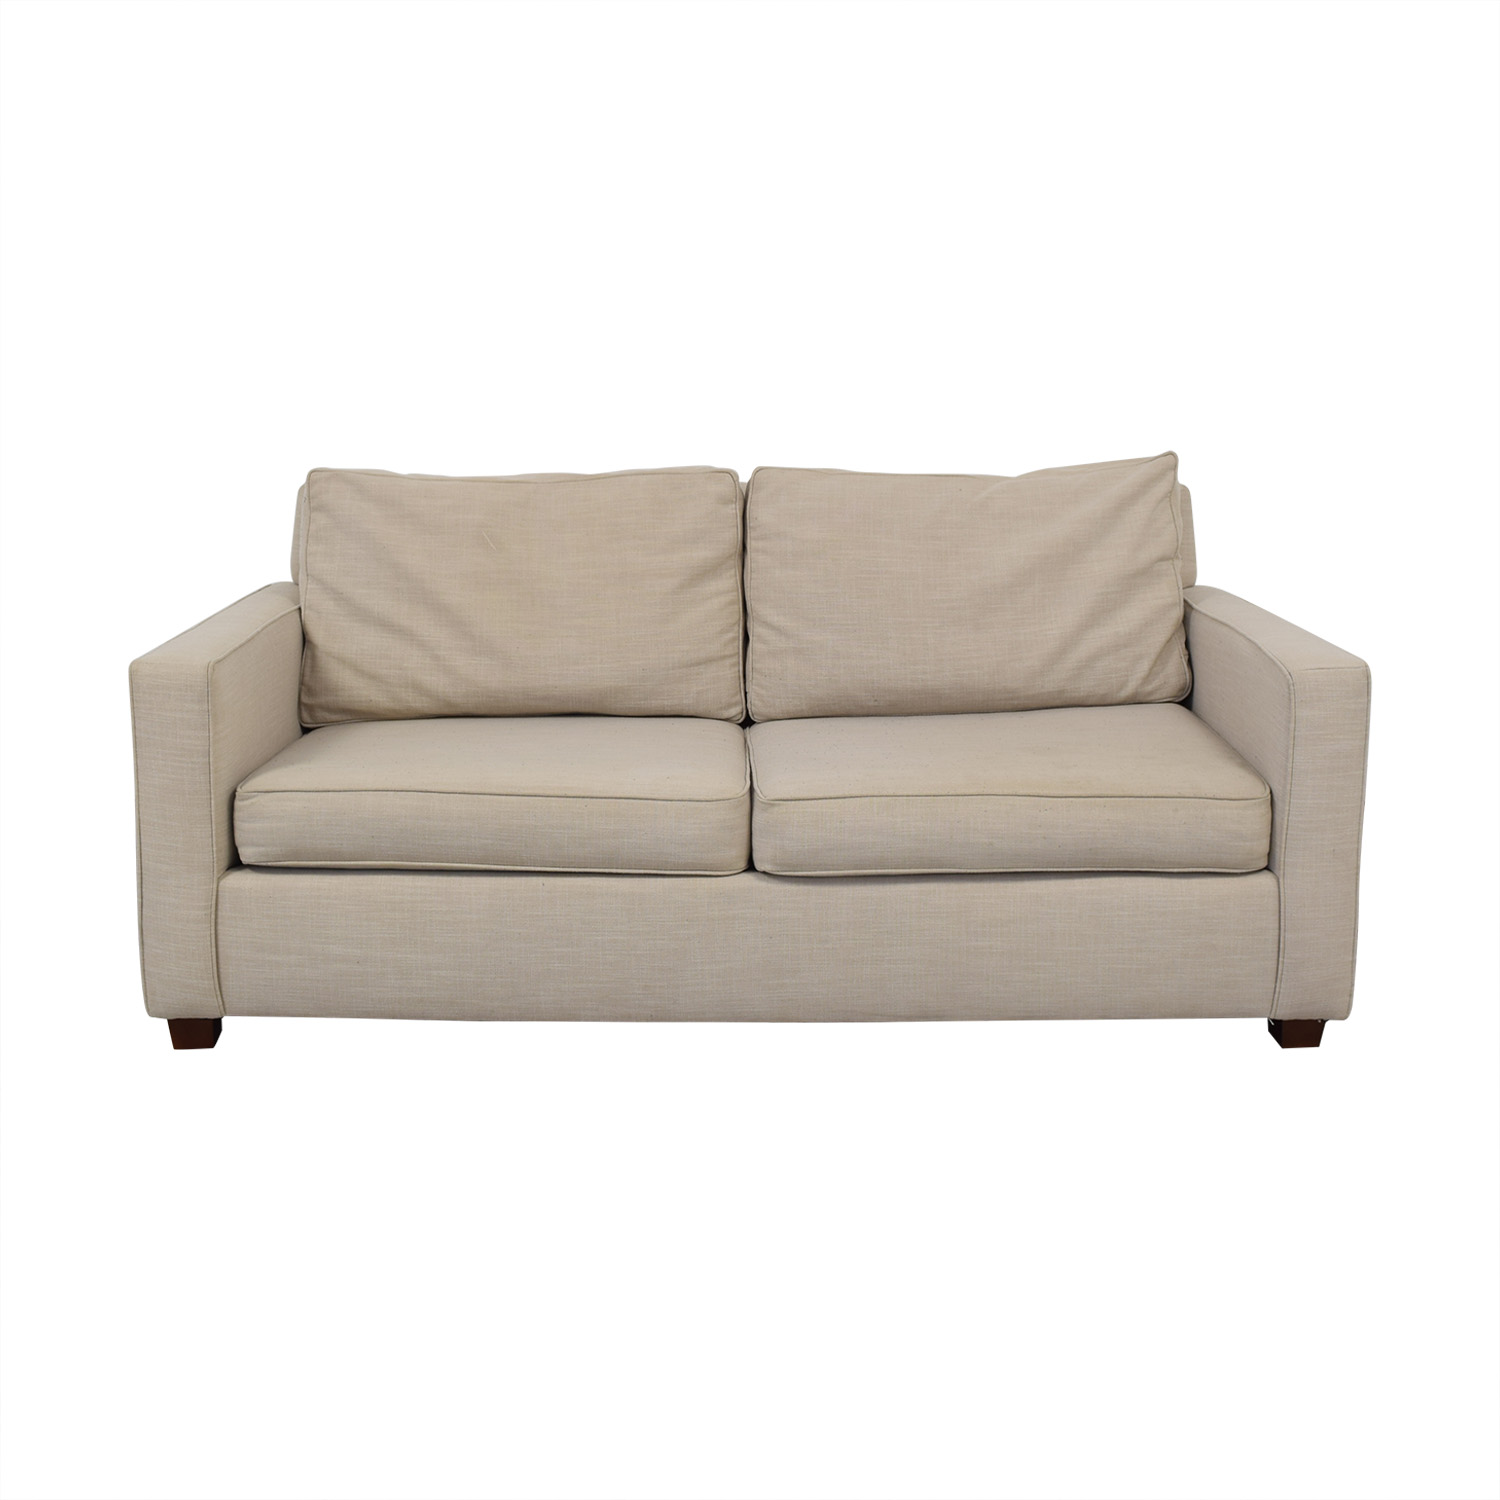 West Elm West Elm Henry Sofa coupon